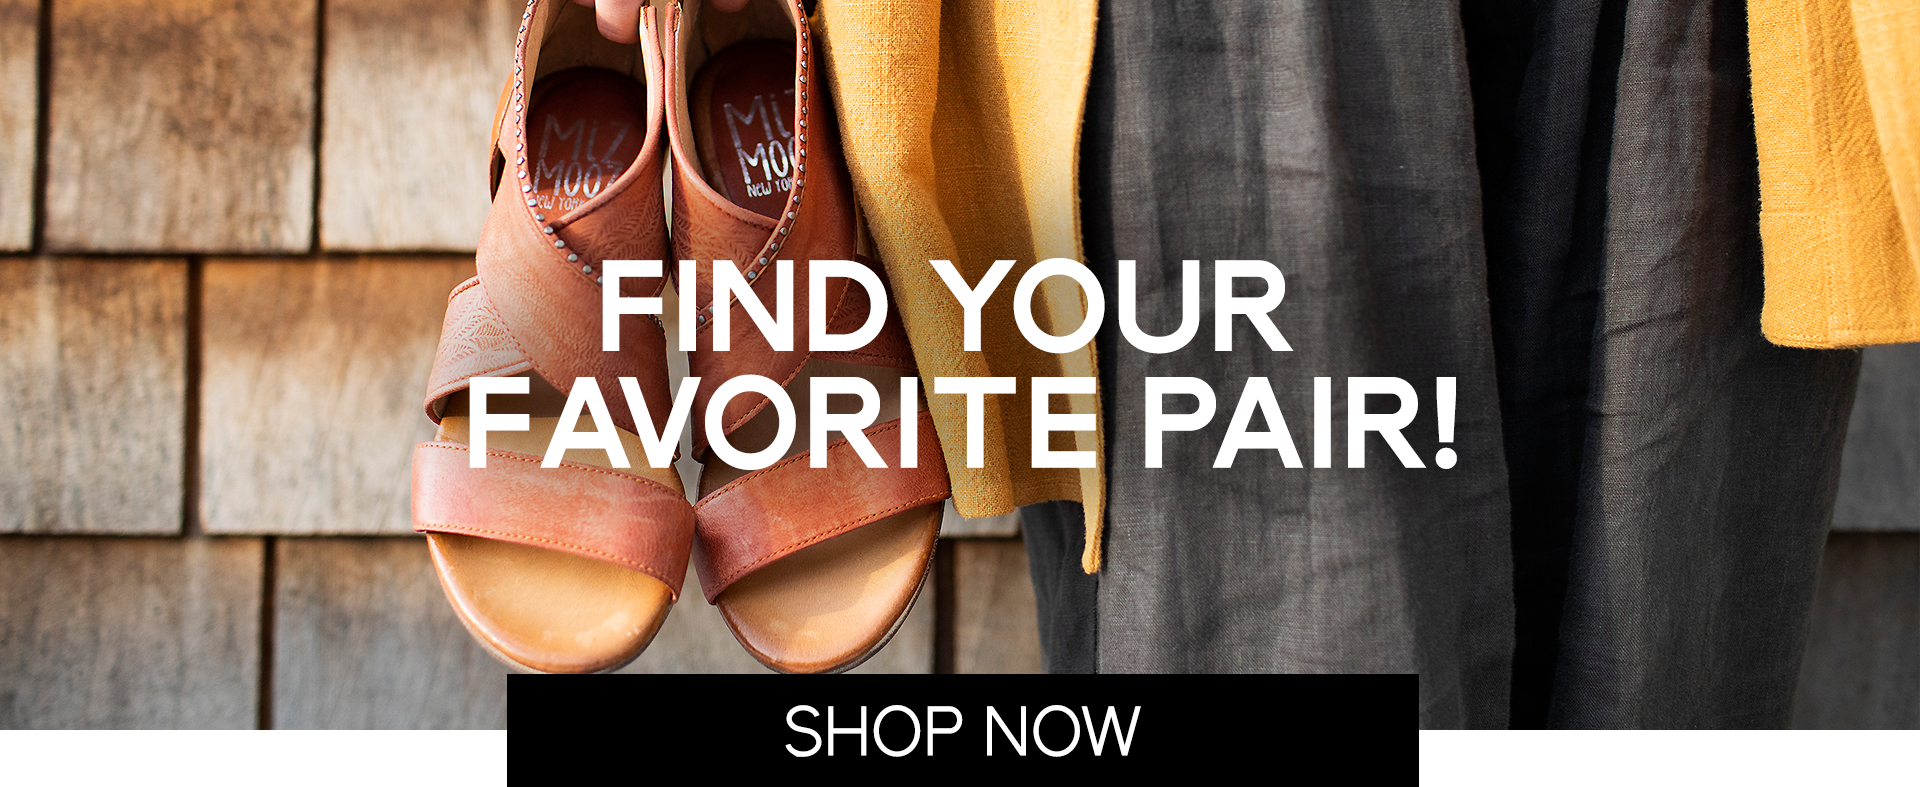 FIND YOUR FAVORITE PAIR!